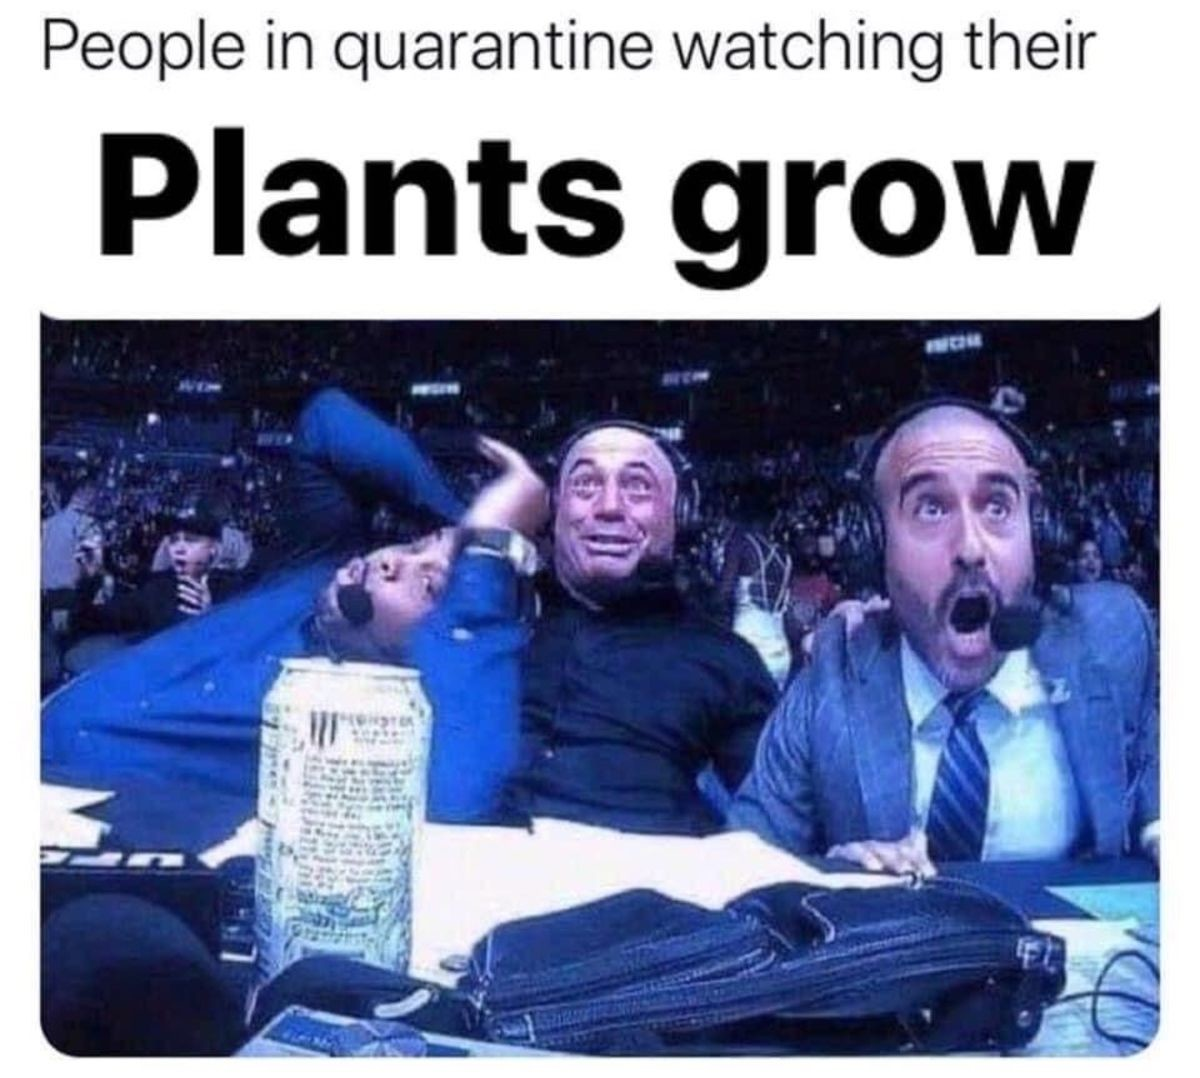 My mother gave me a strawberry plant. join list: HappyThoughts (1573 subs)Mention History.. yo dudes. i started playing classic wow again, anyone playing on Grobbulus? (US) or Zandalar Tribe (EU) ? ALSO incase you missed it: if you check the post befor